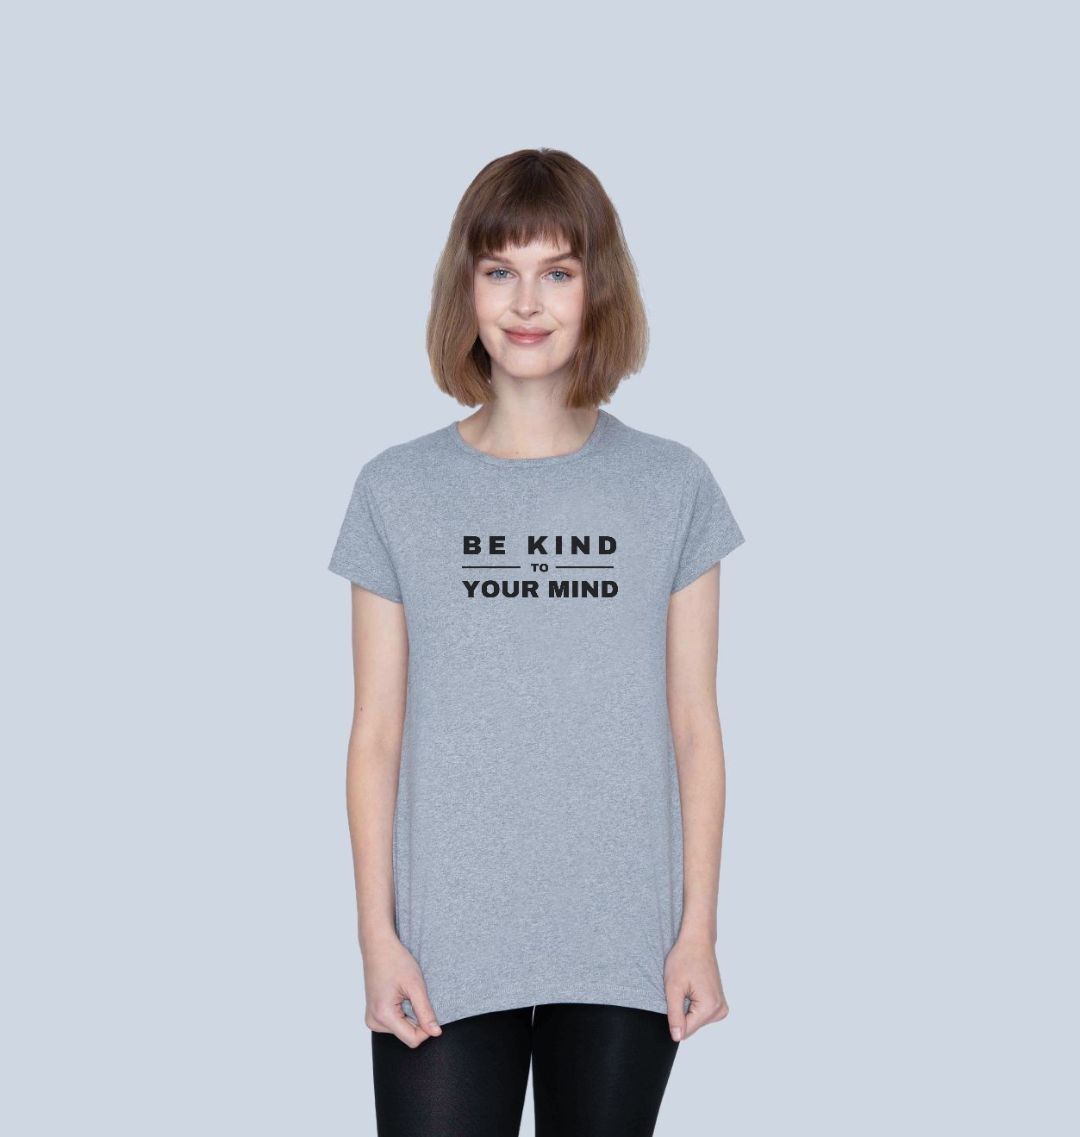 BE KIND TO YOUR MIND Womens Mental Health T-shirt Top grey